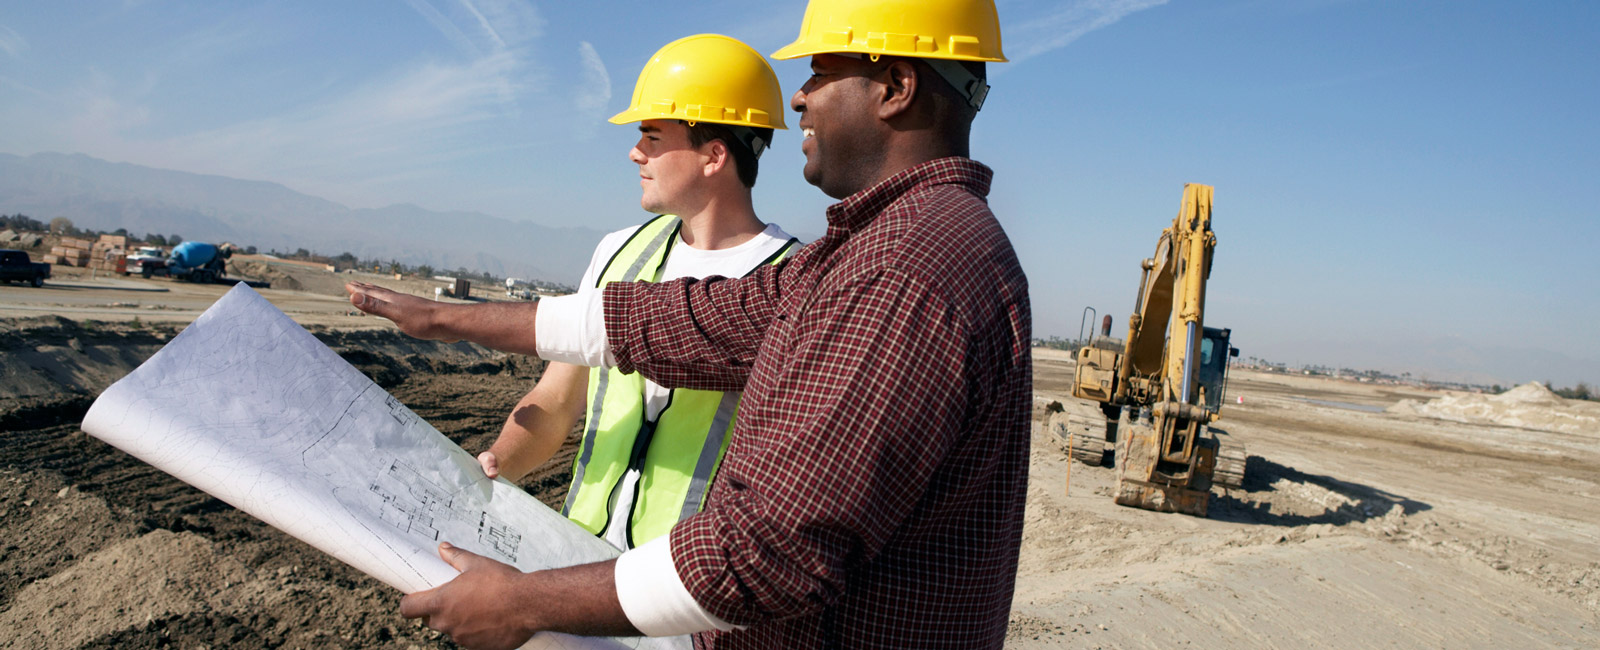 Masters in Construction Management